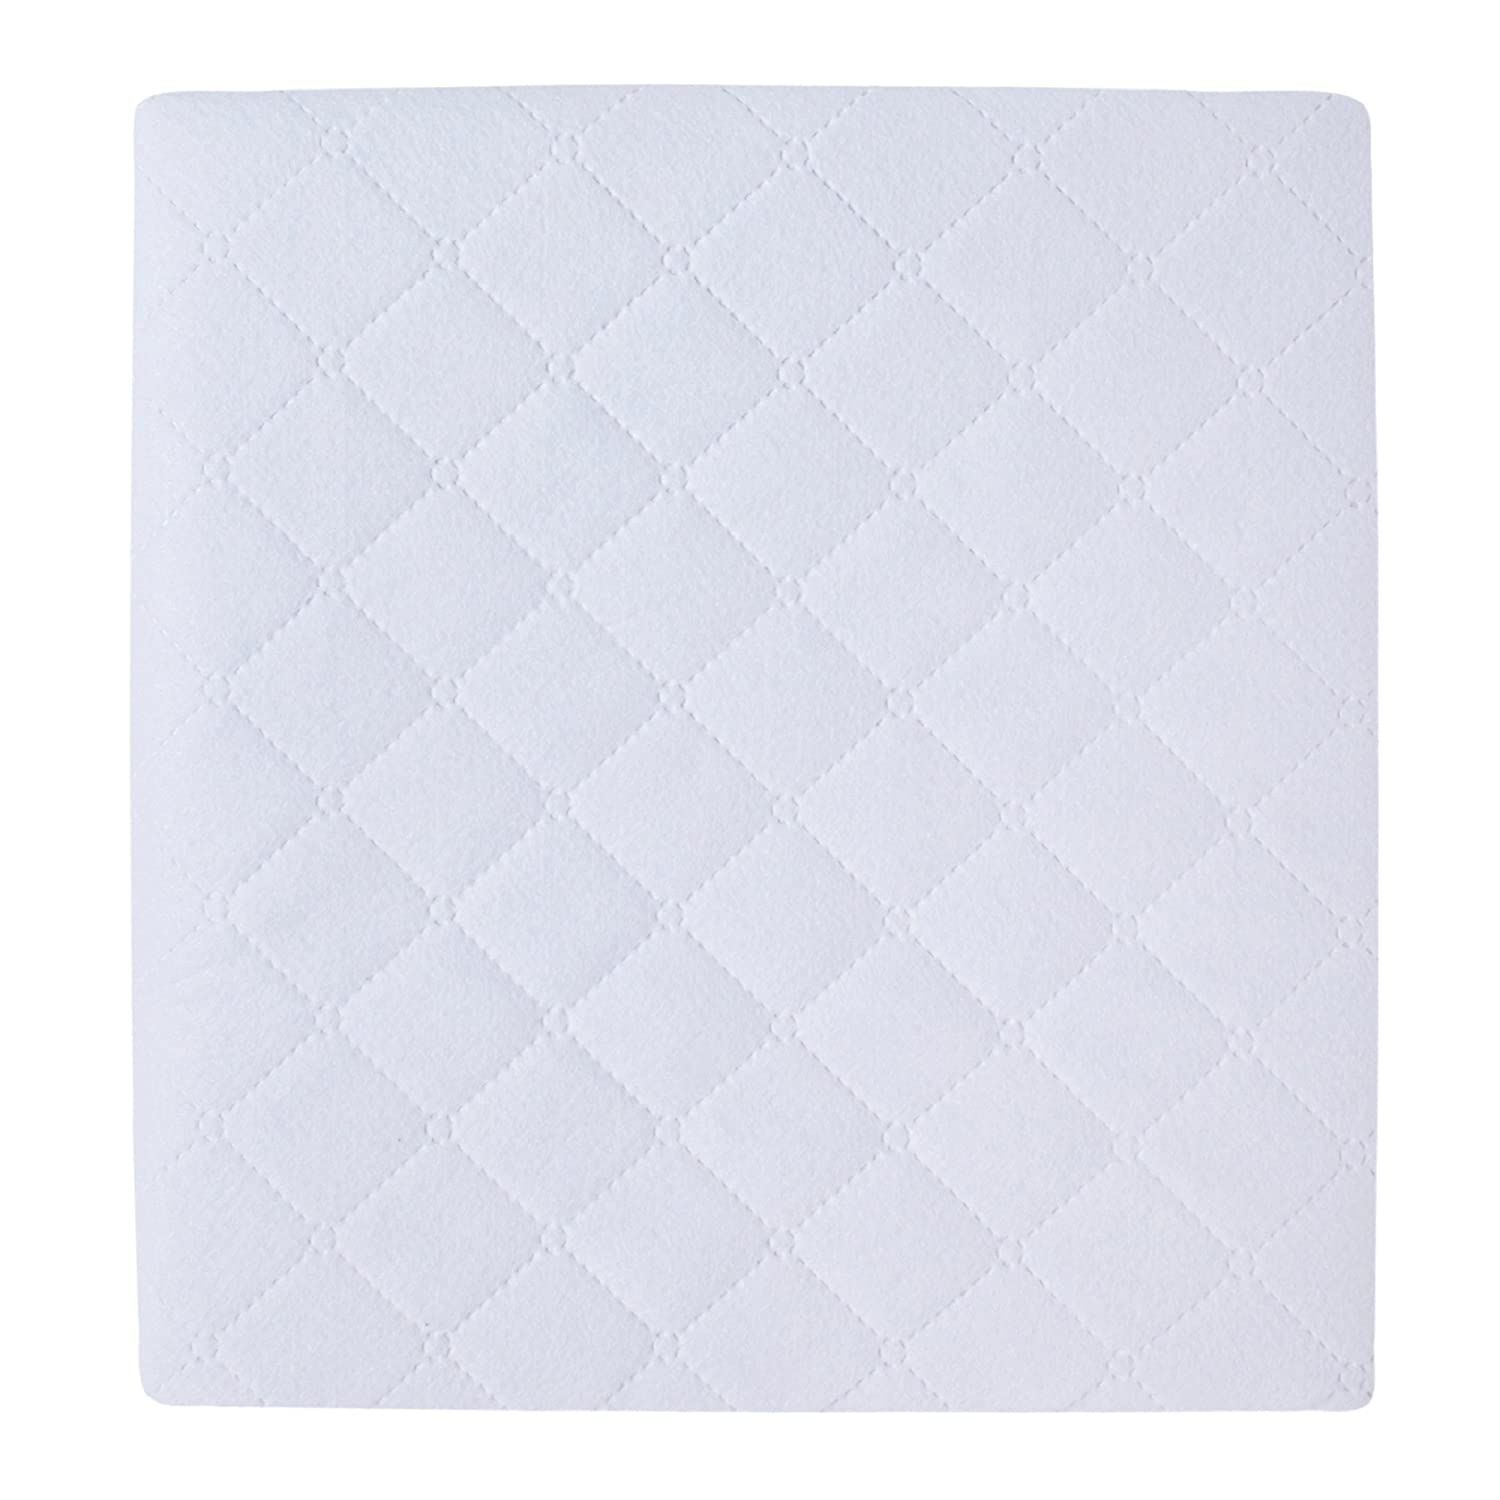 Solid White One Size Carters 2 Piece Protector Pad